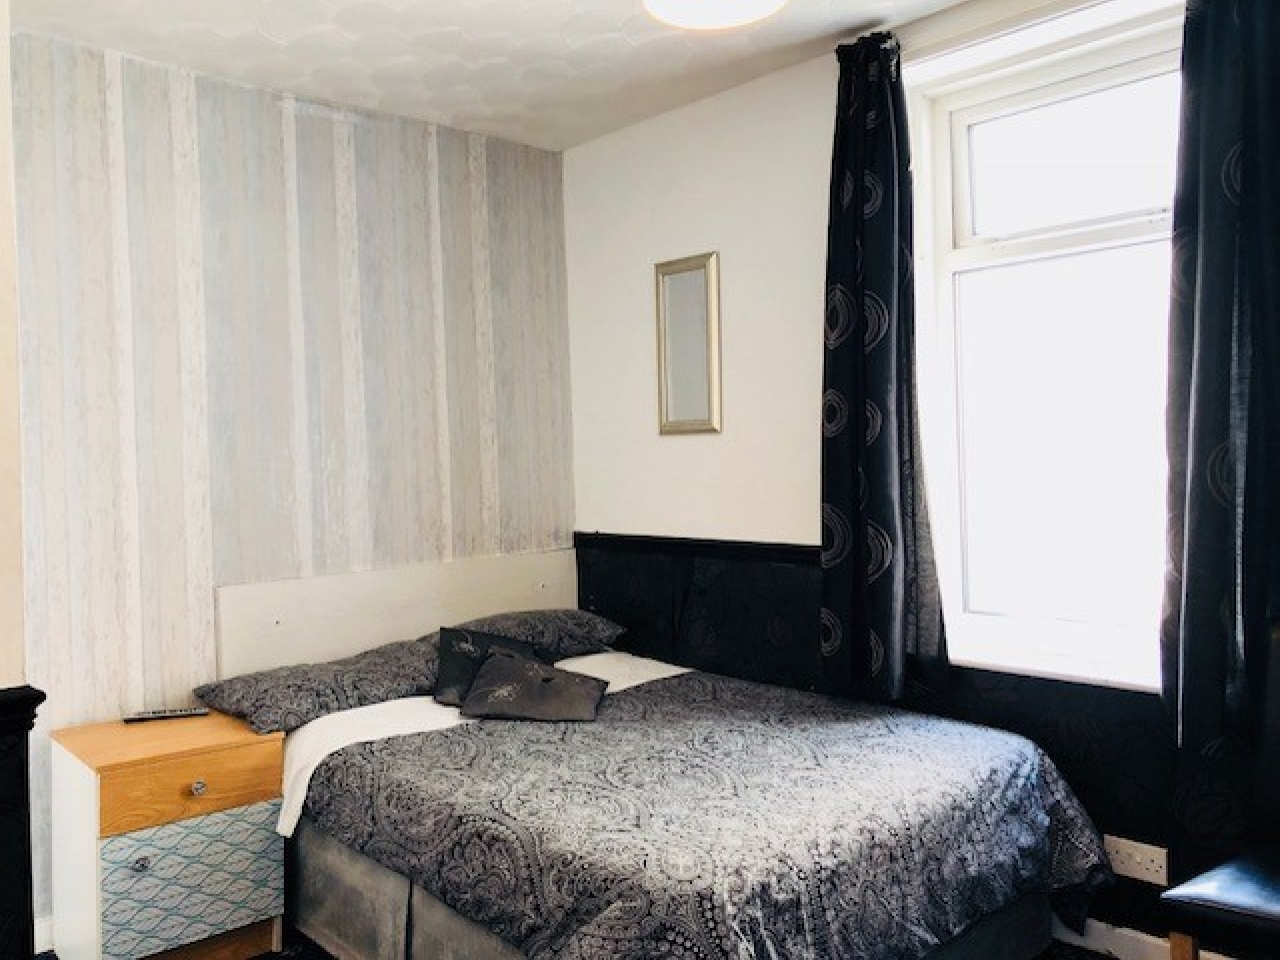 12 Bedroom Hotel For Sale - Photograph 9